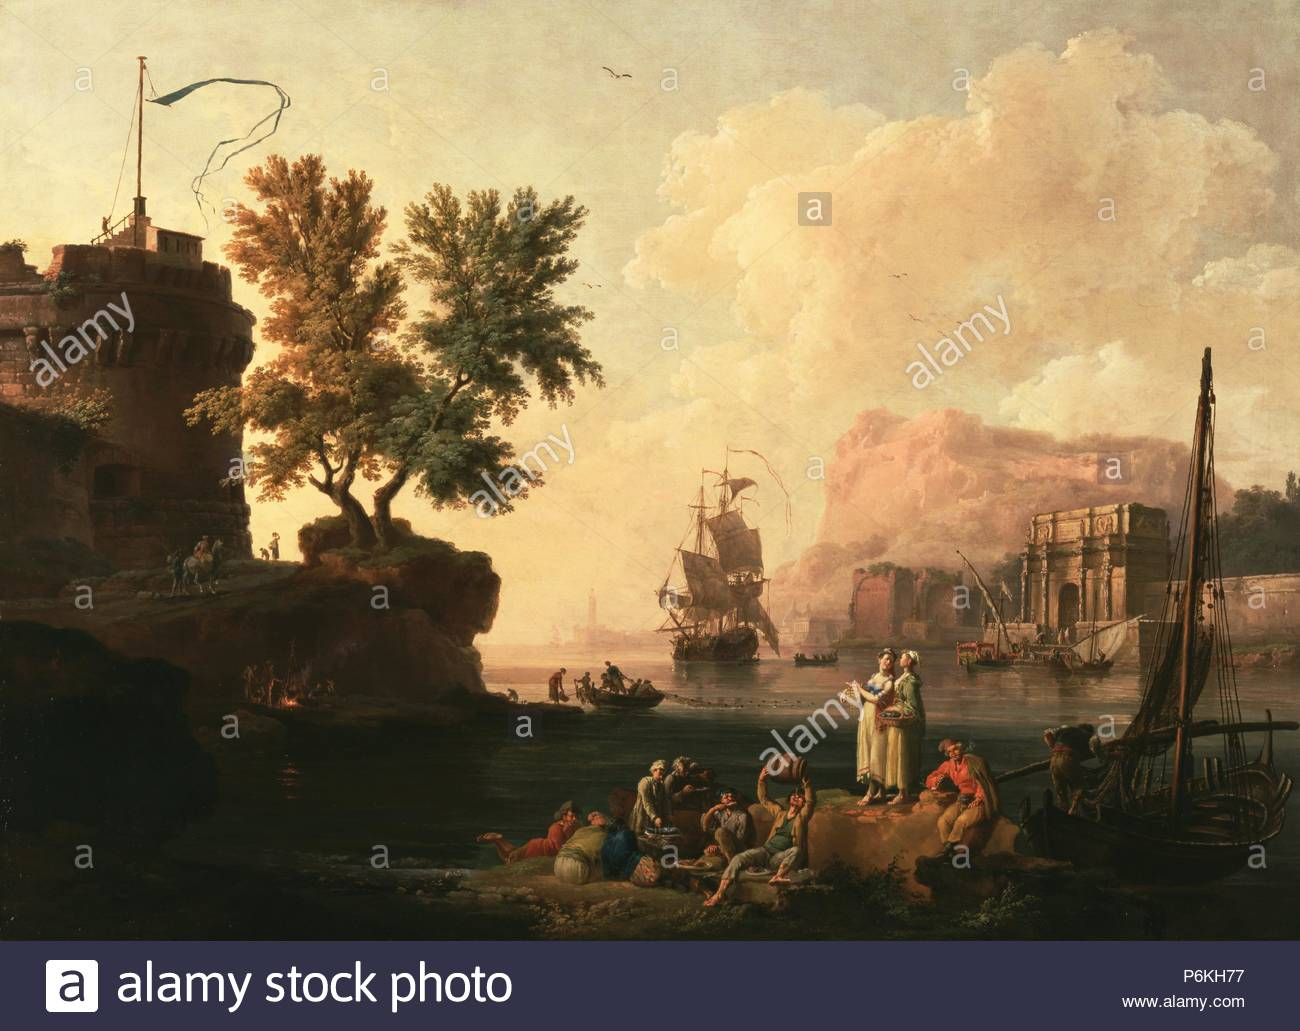 Mediterranean harbor scene pierre jacques volaire french 1729 1799 about 1763 oil on canvas unframed 96 5 x 134 6 cm 38 x 53 in